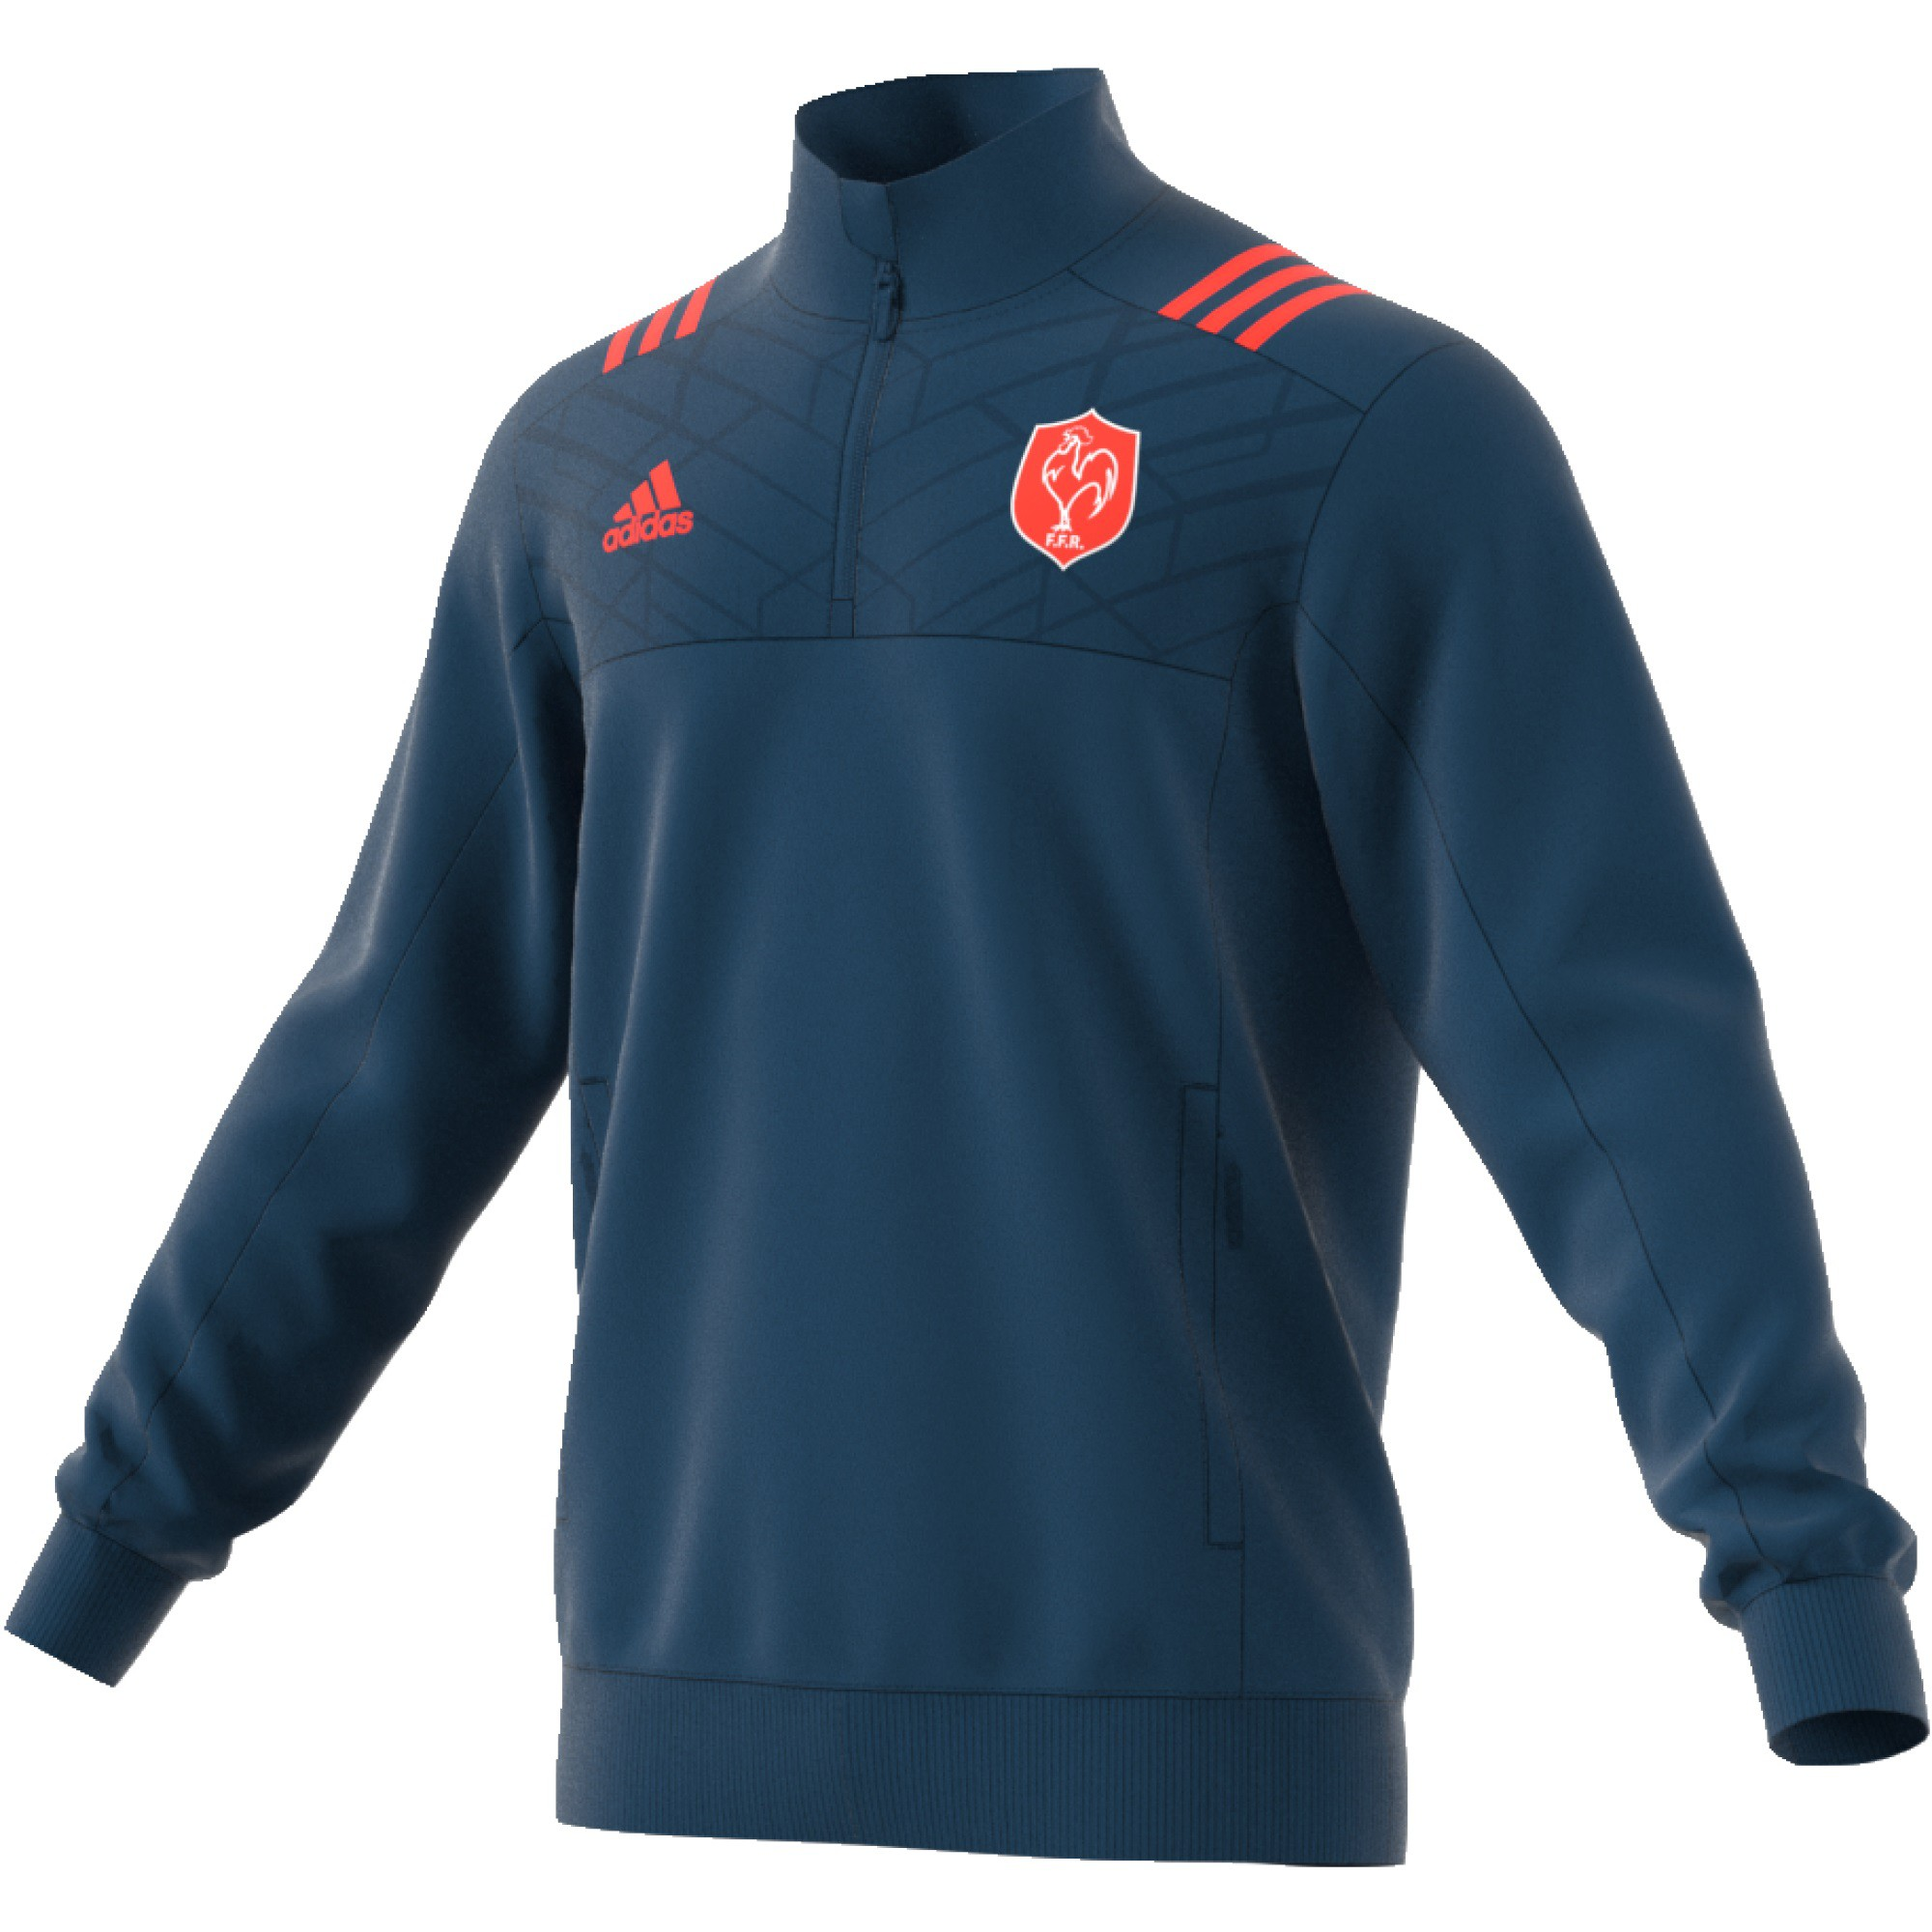 Adidas ffr rugby fleece 2016 2017 nation - Coupe vent adidas junior ...